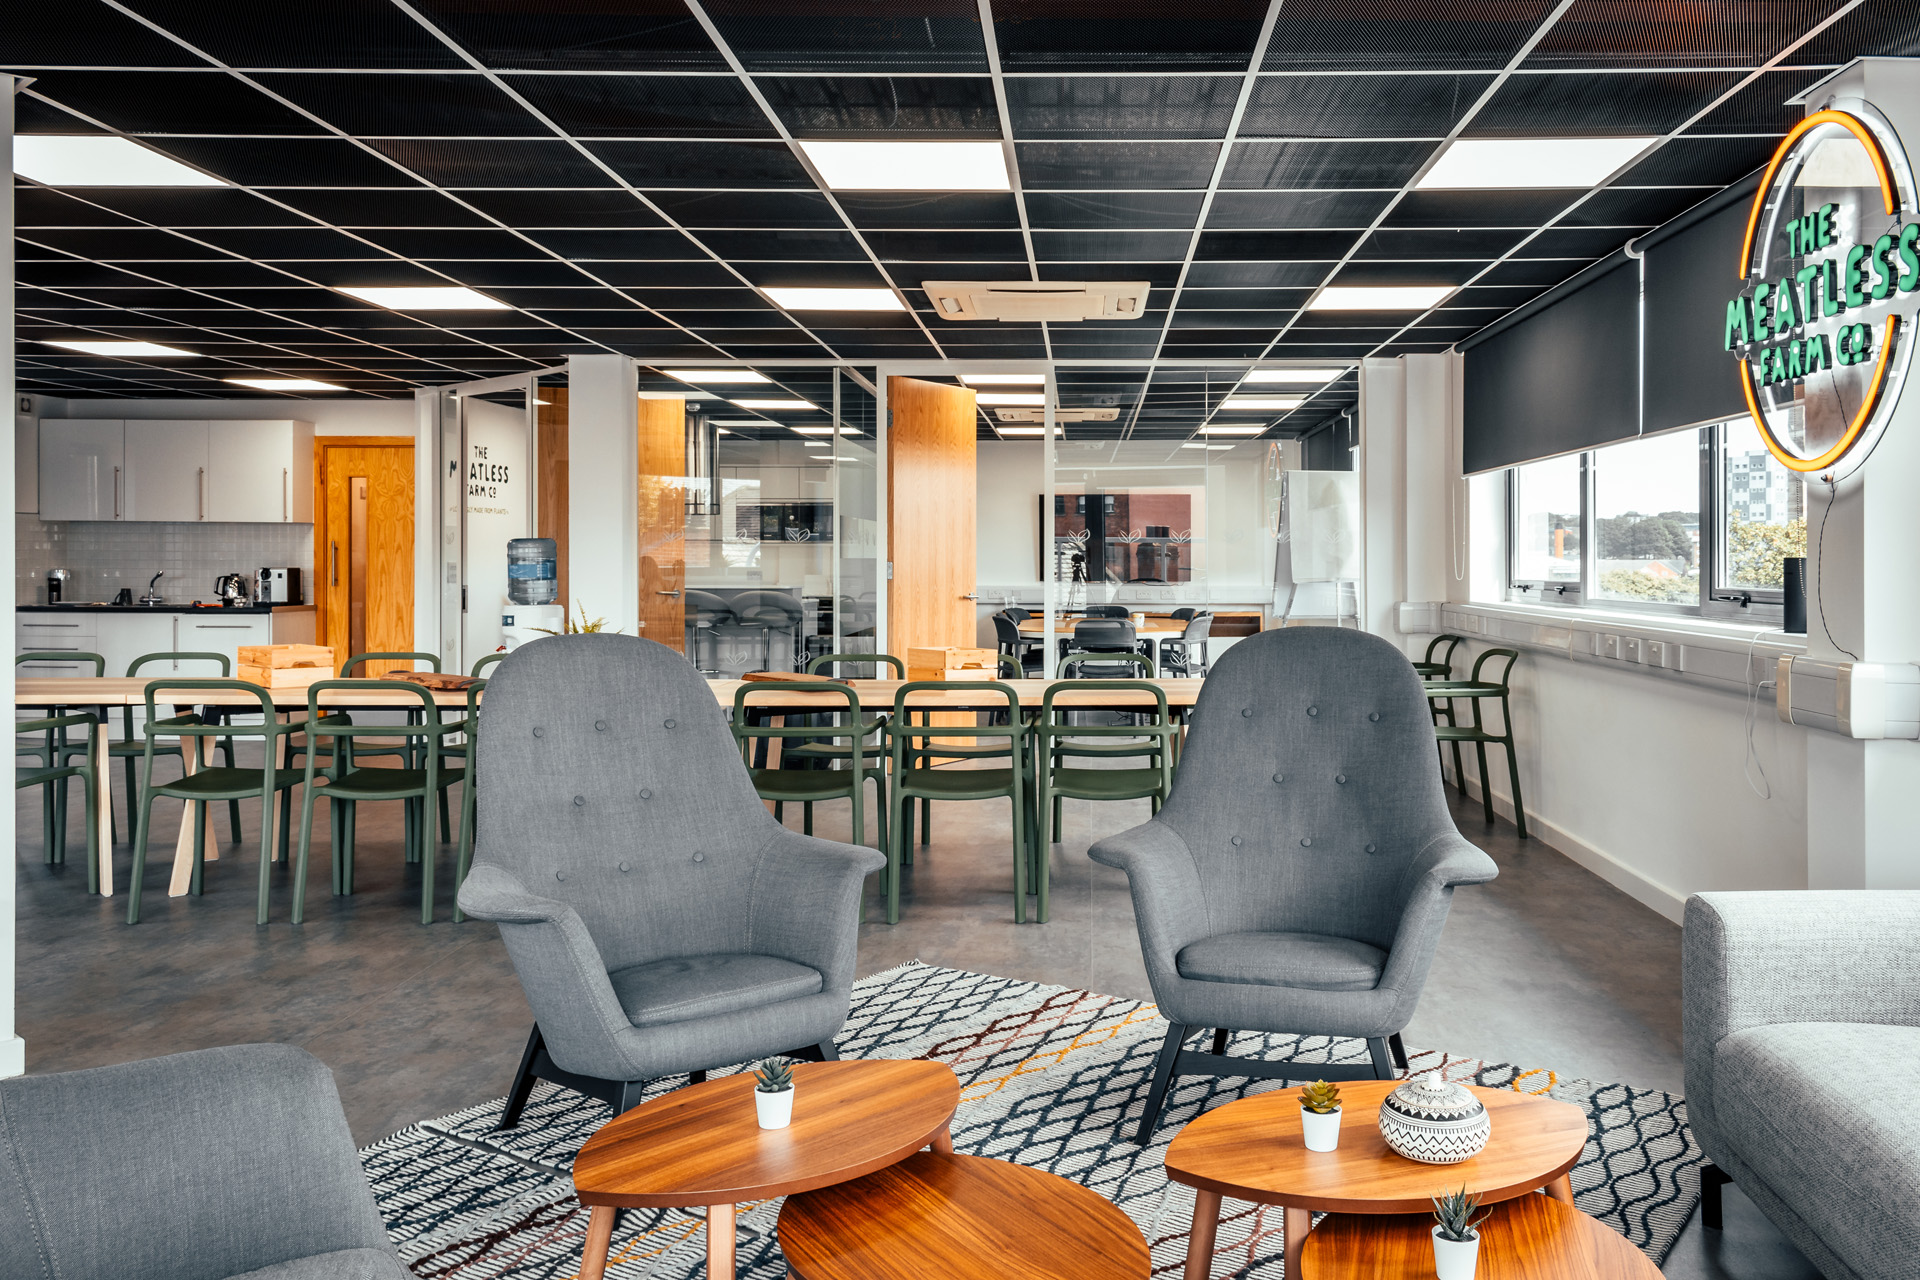 Breathe a new lease of life into a space to refresh your work environment